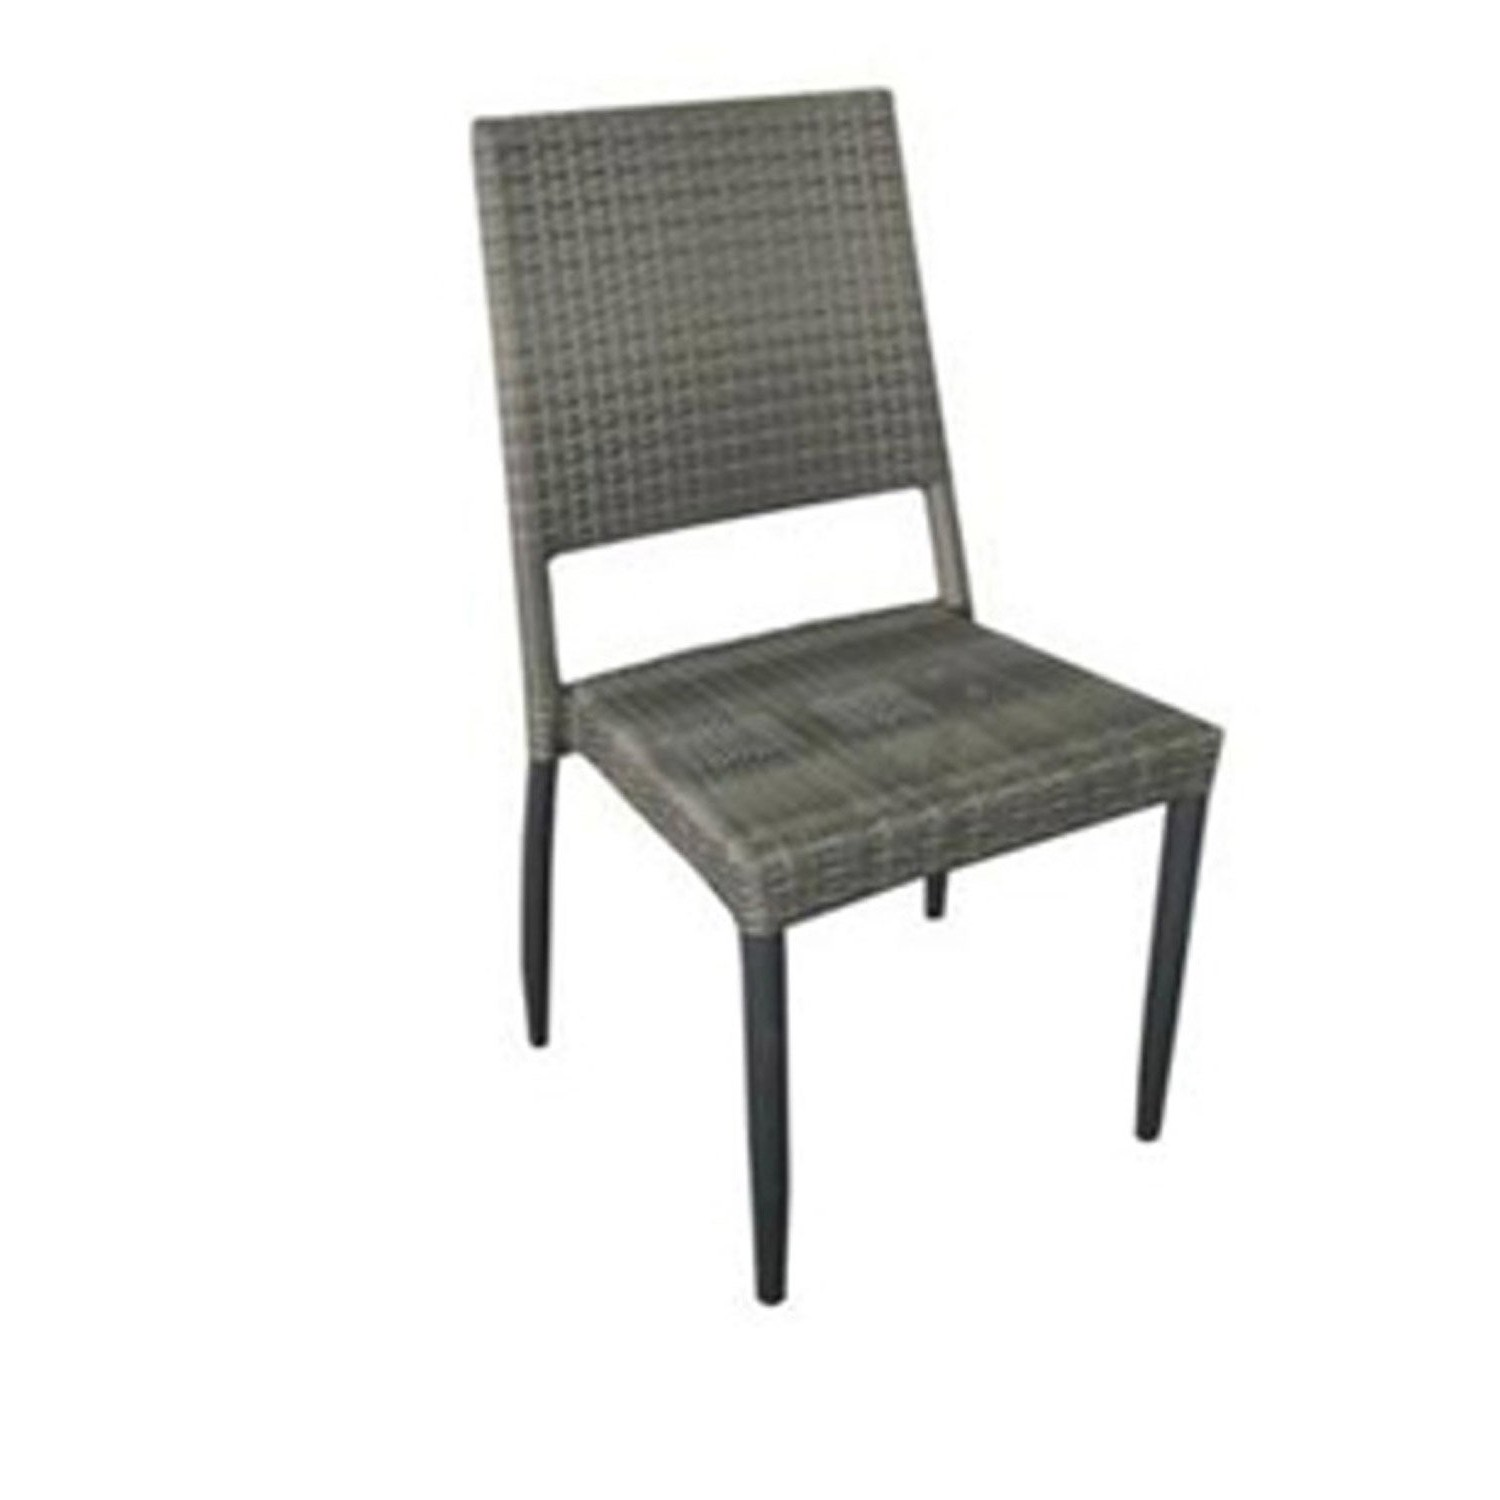 Chaise Resine Tressee Leroy Merlin